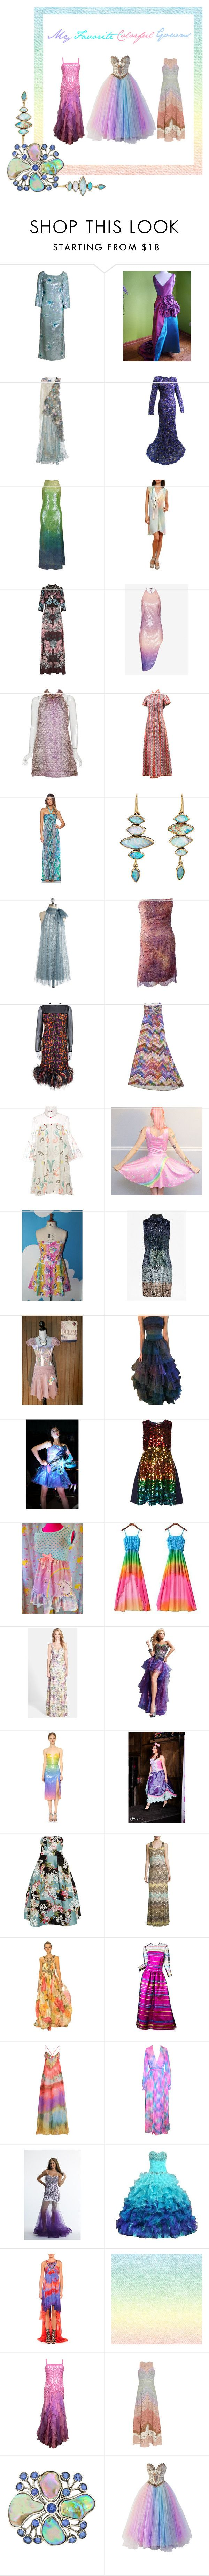 """My Favorite - Colorful Gowns & Coctail Dresses.."" by misshollowpointslug ❤ liked on Polyvore featuring мода, Rodarte, Oscar de la Renta, Halston, Maison Margiela, Biyan, Cushnie Et Ochs, Pierre Cardin, Jean Patou и Sky"